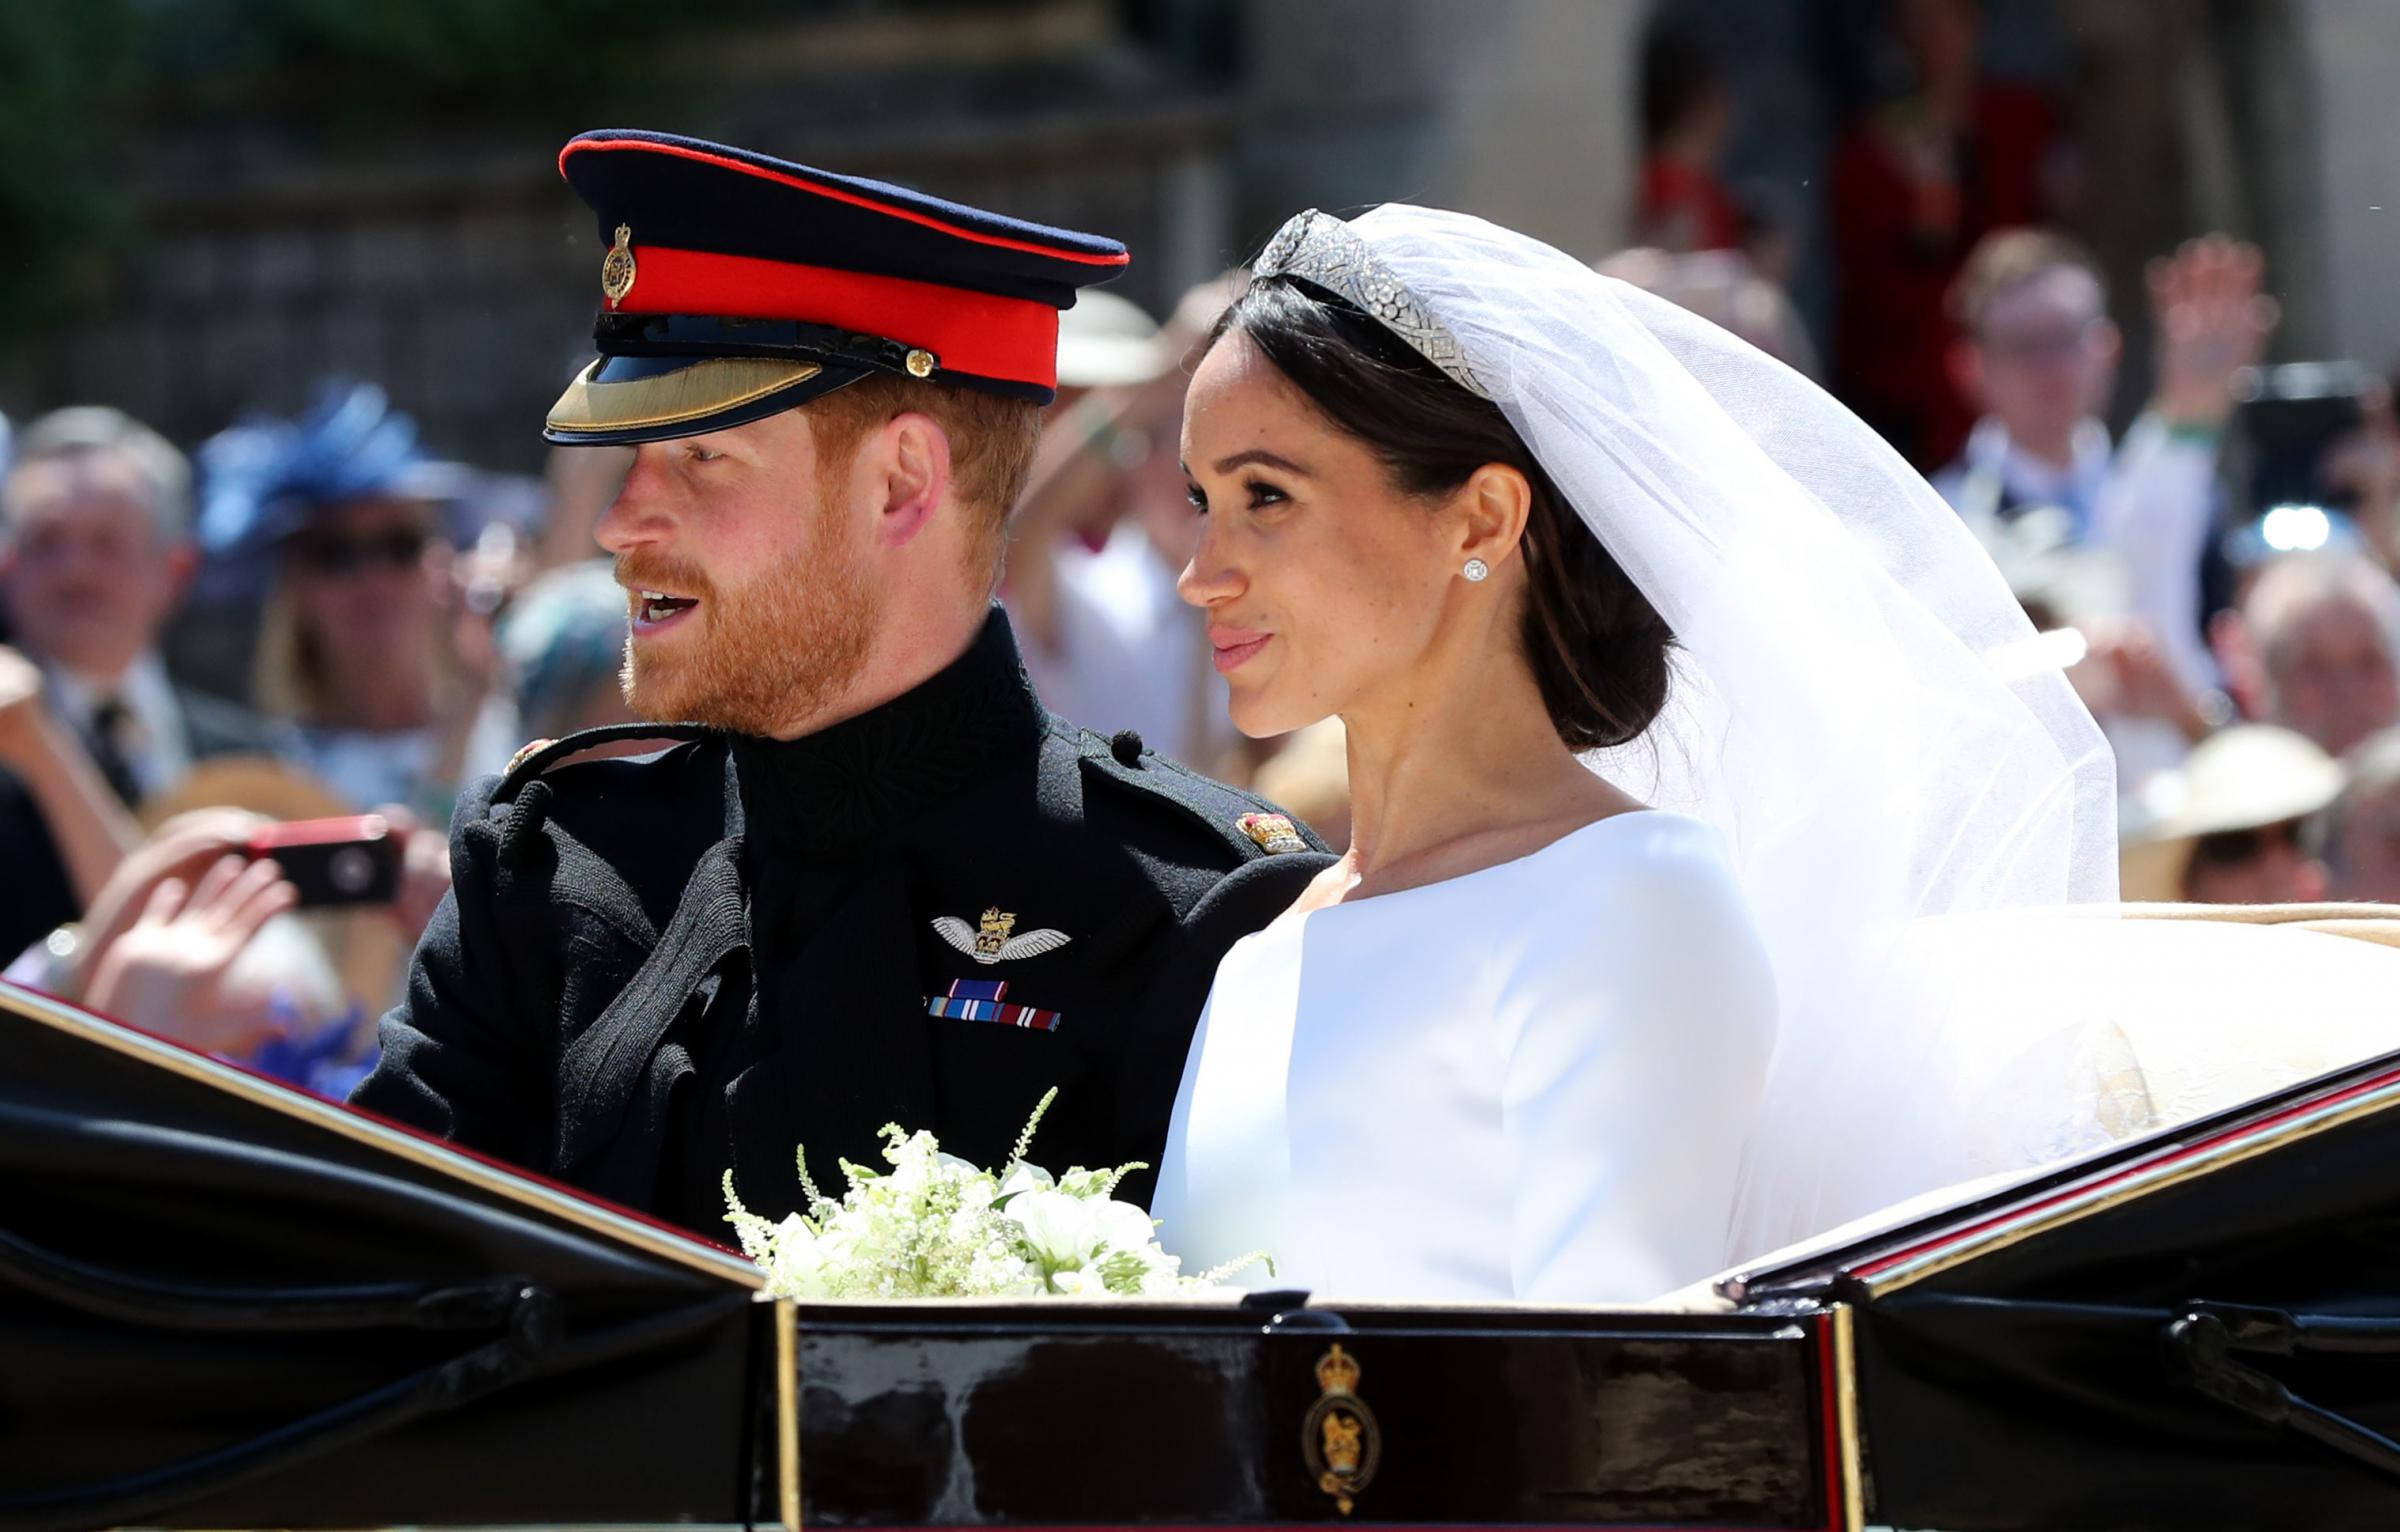 File photo dated 19/05/18 of Meghan Markle and Prince Harry leaving St George's Chapel at Windsor Castle after their wedding. During their wedding ceremony, Harry looked tenderly at his bride and smiled when the Dean of Windsor spoke o